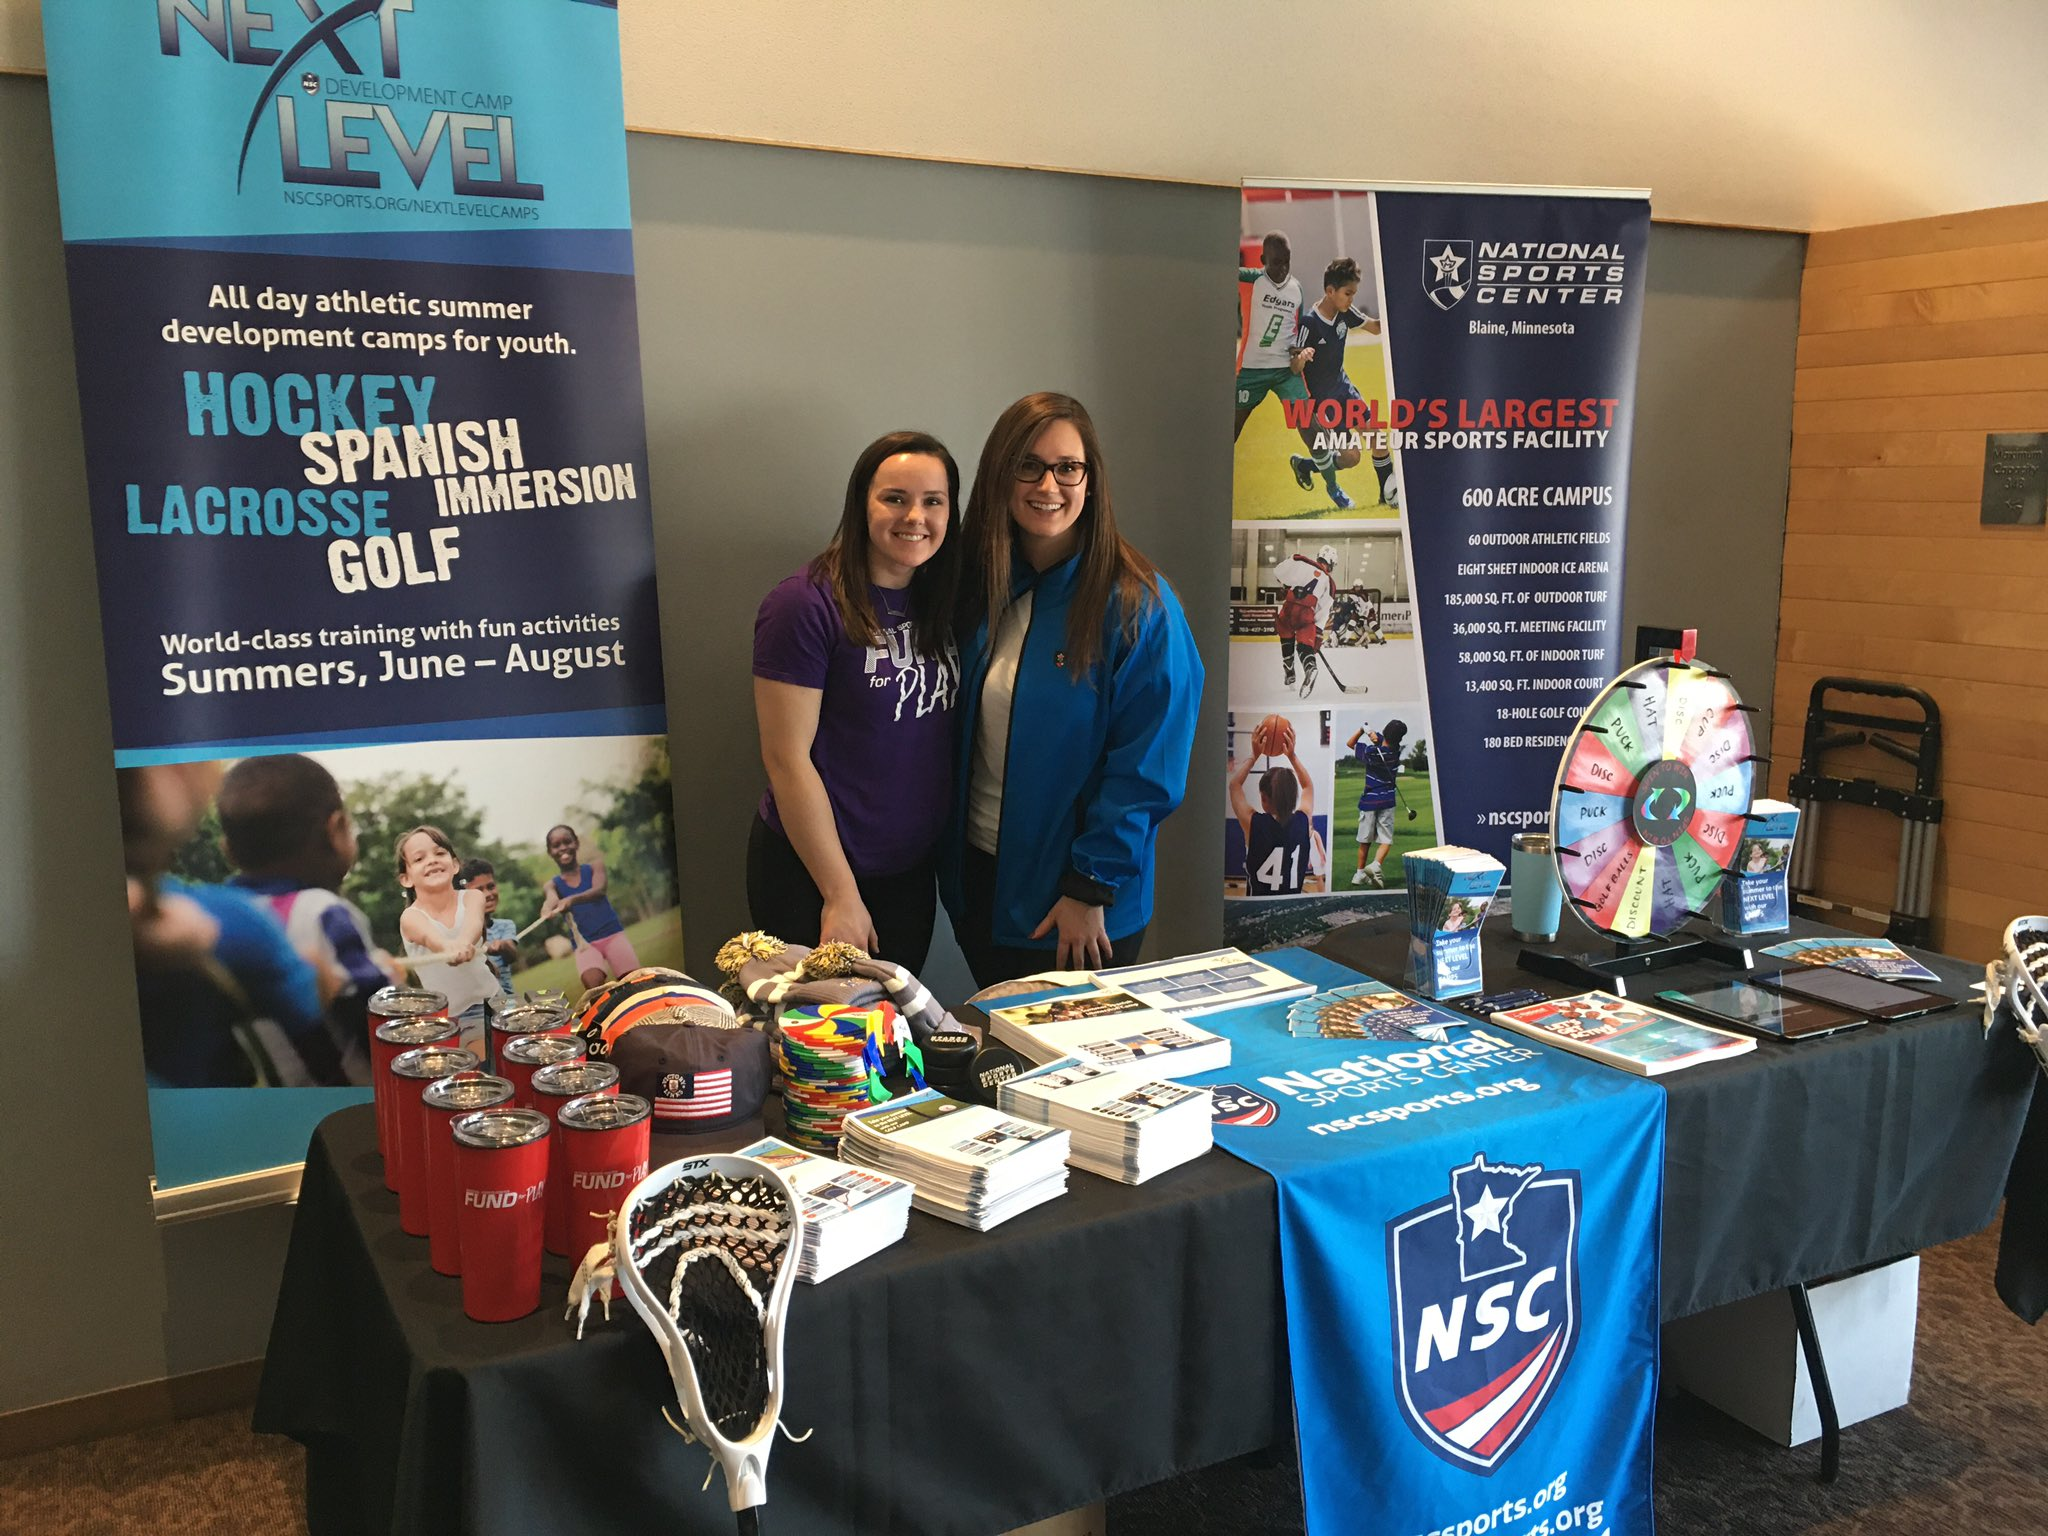 NSC Sports and Recreation Coordinators Logan and Kelly attended the Minnesota Parent's Camp Fair at Como Zoo to promote Next Level Development Camps.